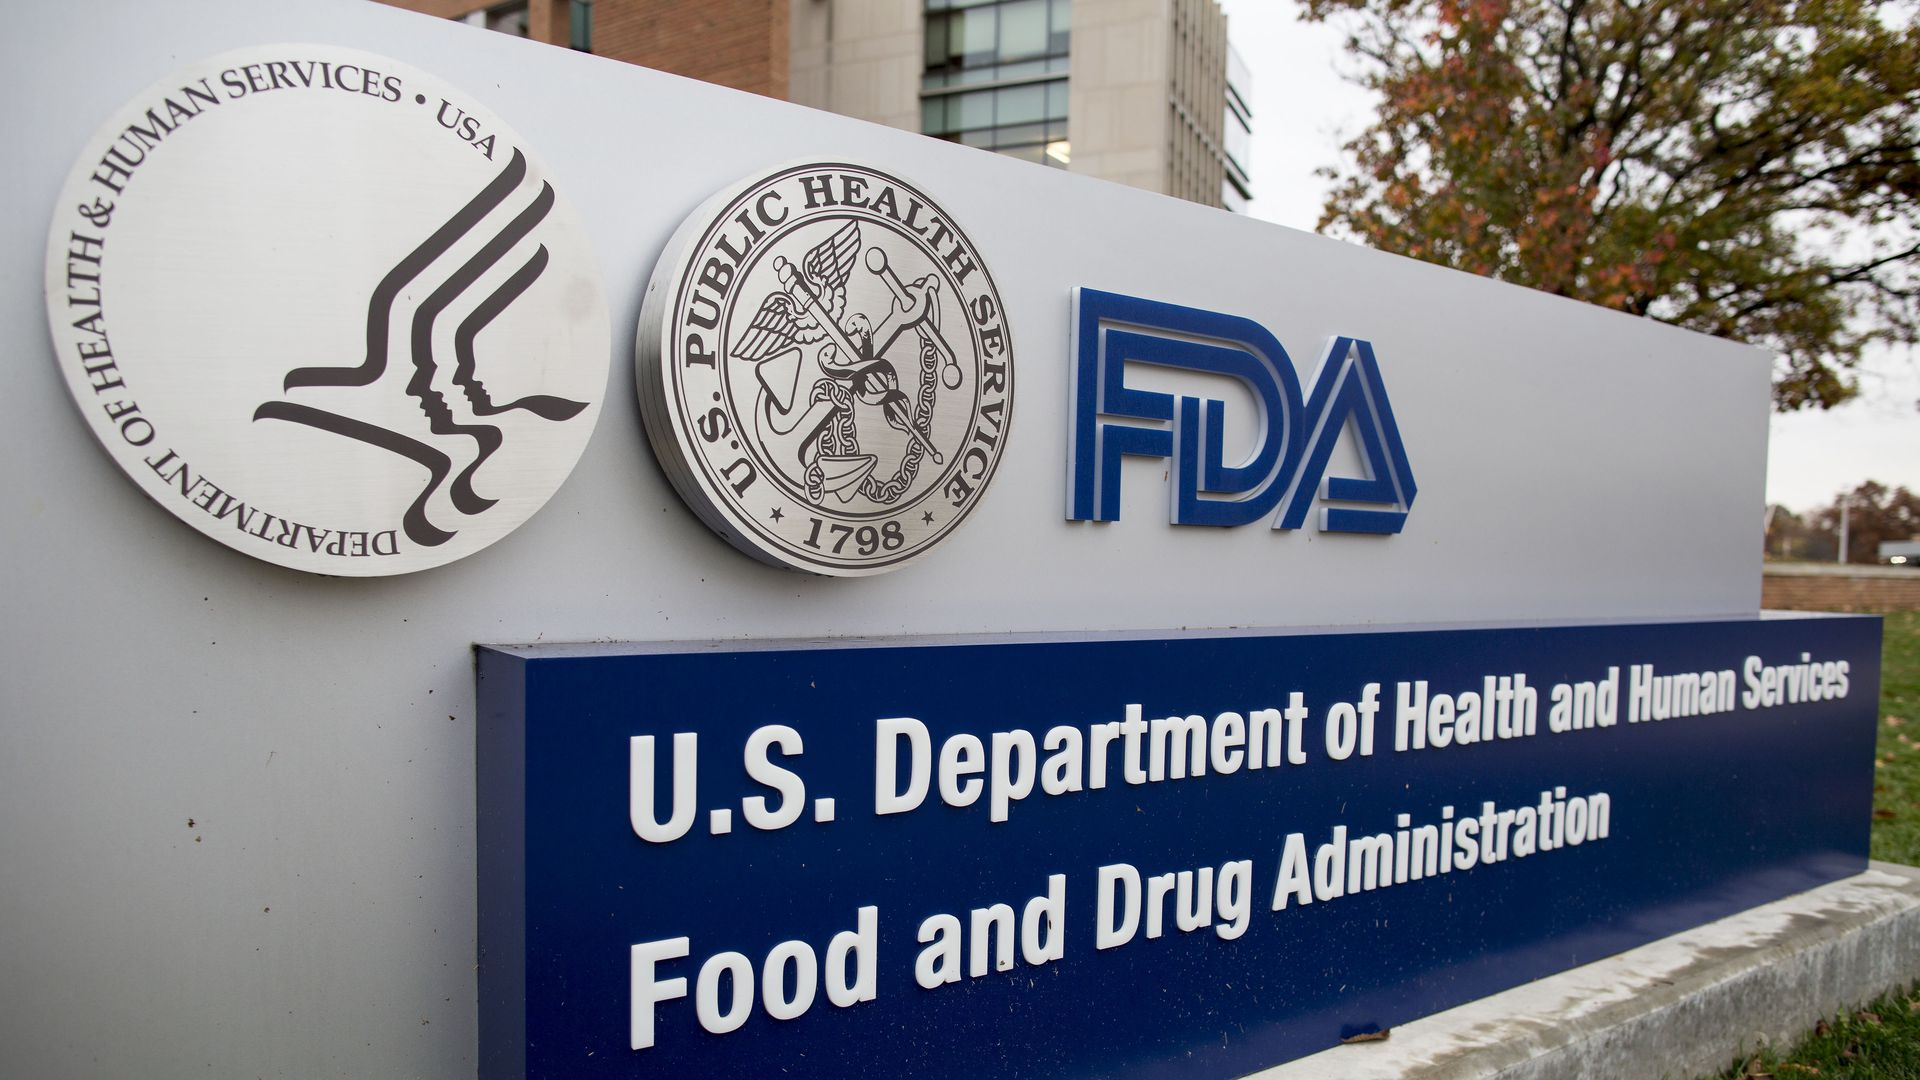 In this image, a sign displays the FDA and HHS logos